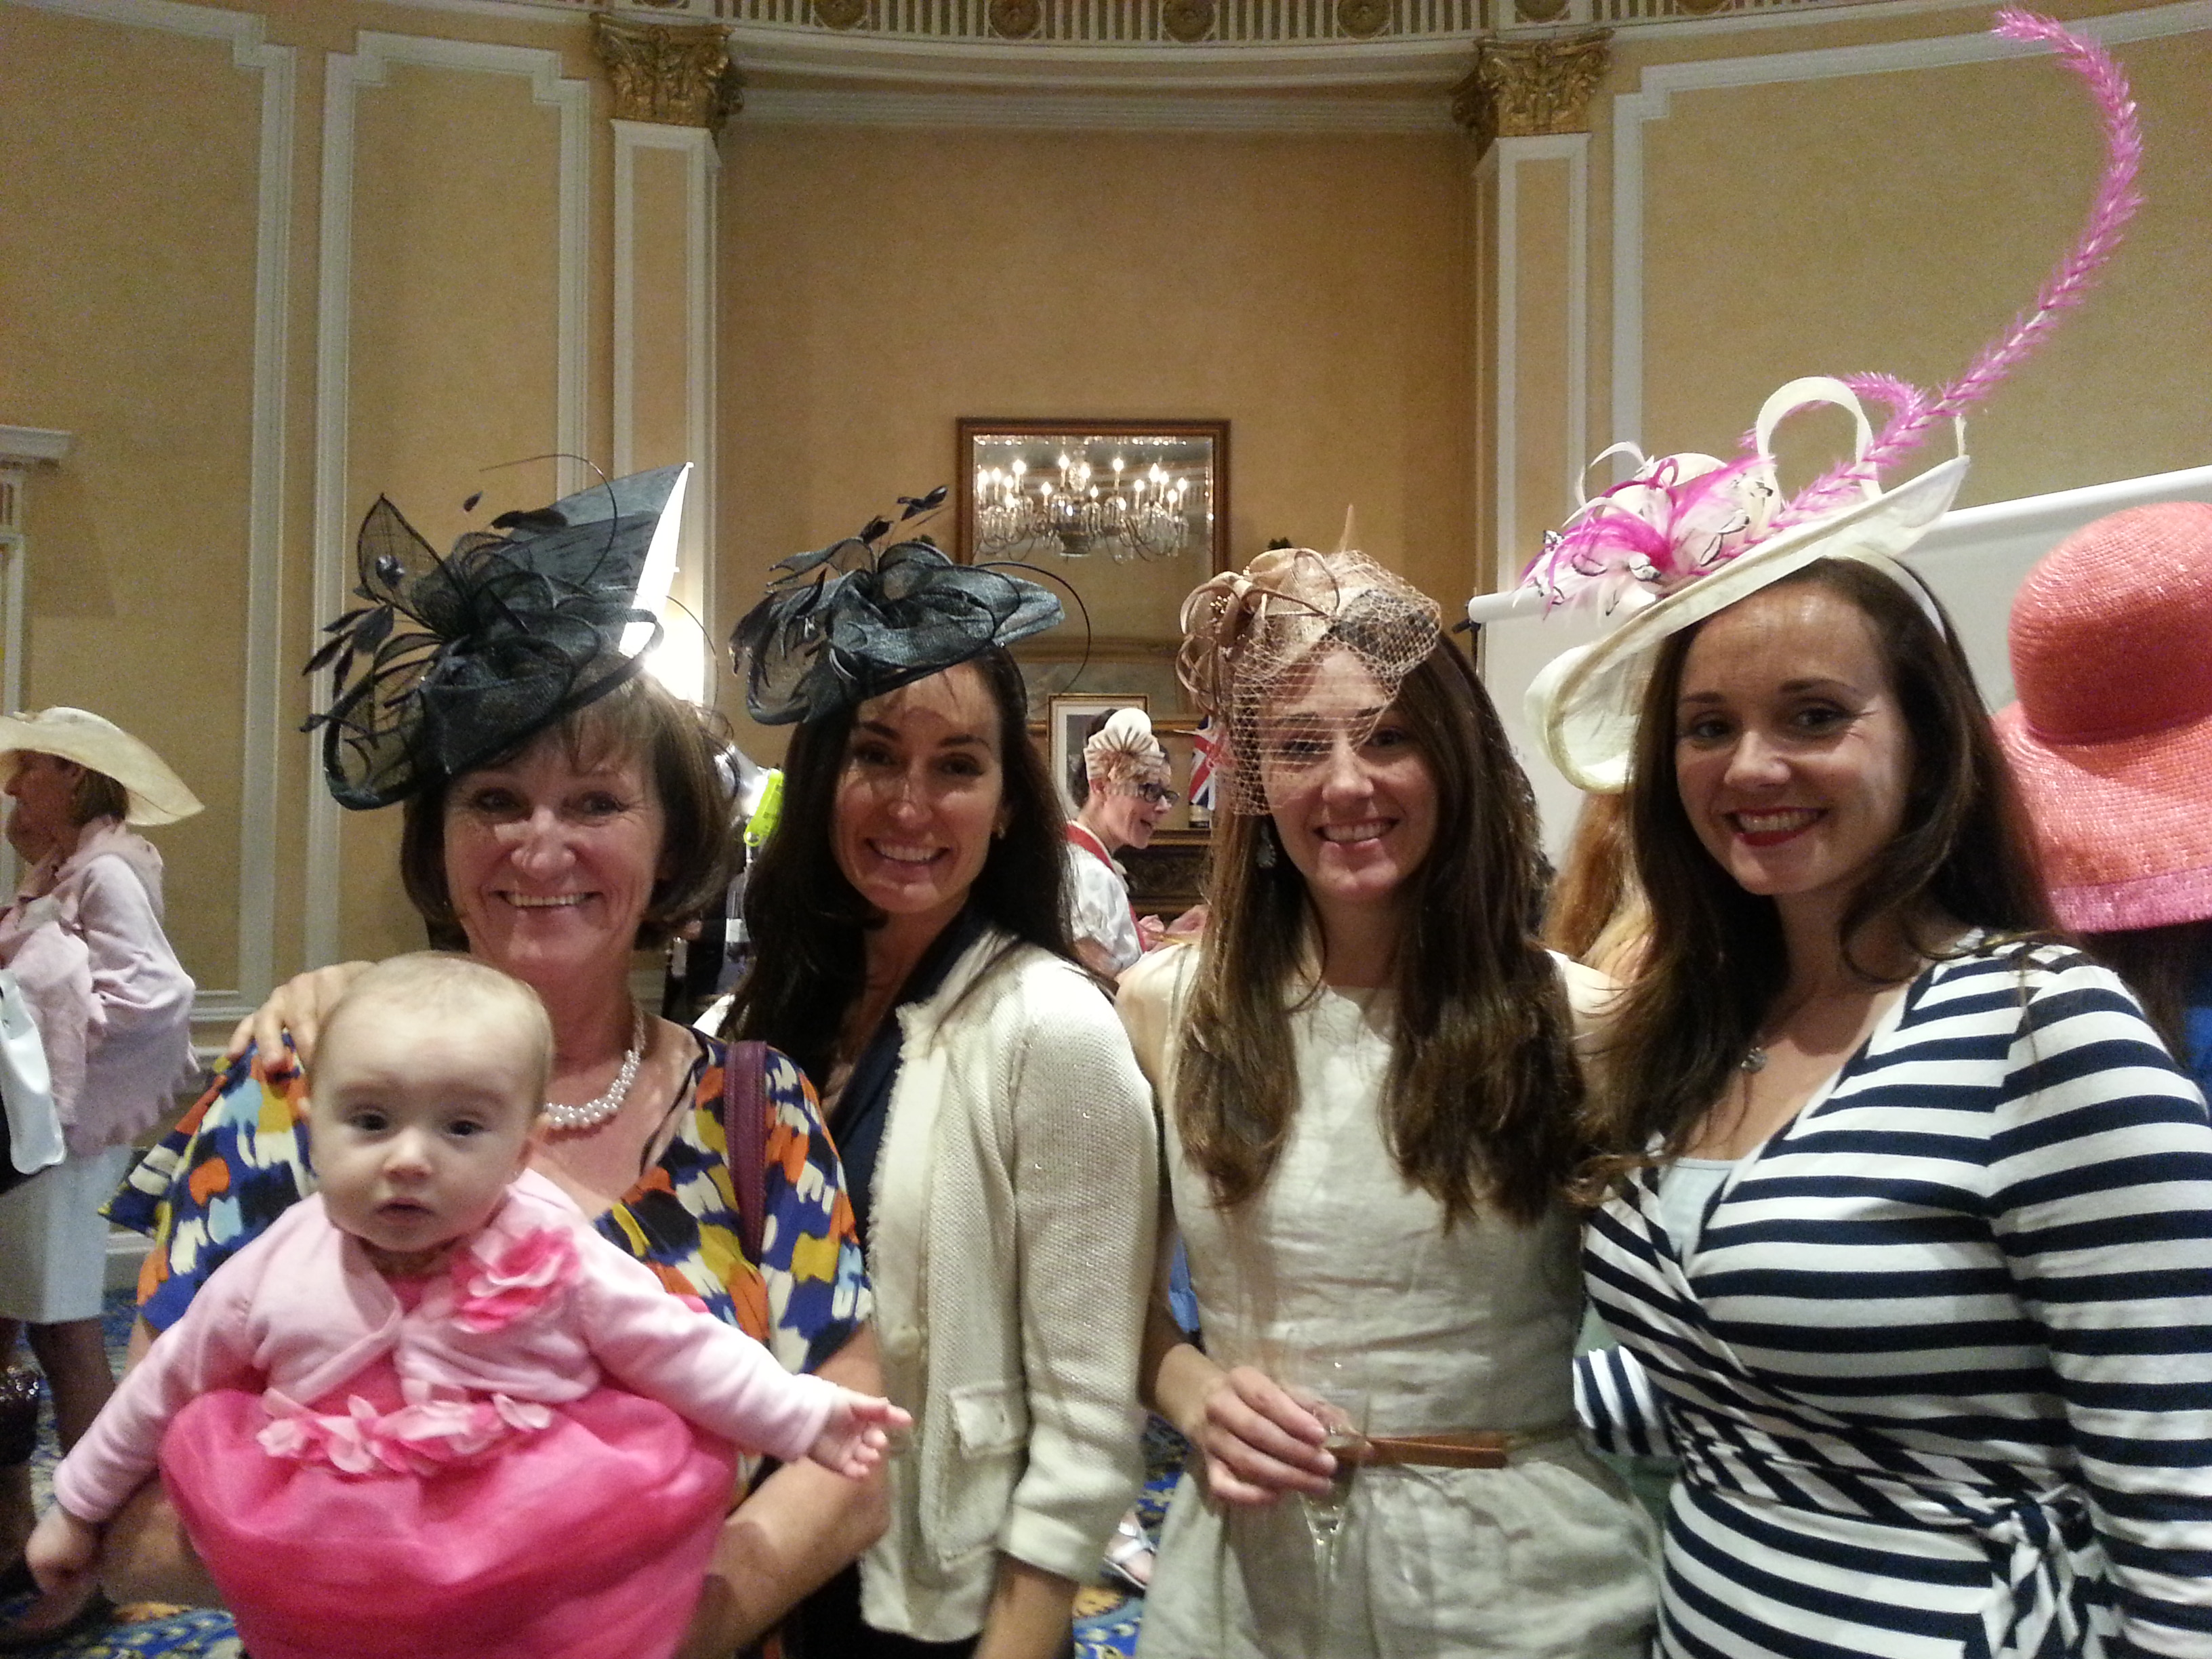 This gorgeous family caught my eye at the tea party.  They all looked fantastic in their fascinators! Most of these fascinators can be found at Chapel Hats at Chinook Center in Calgary.